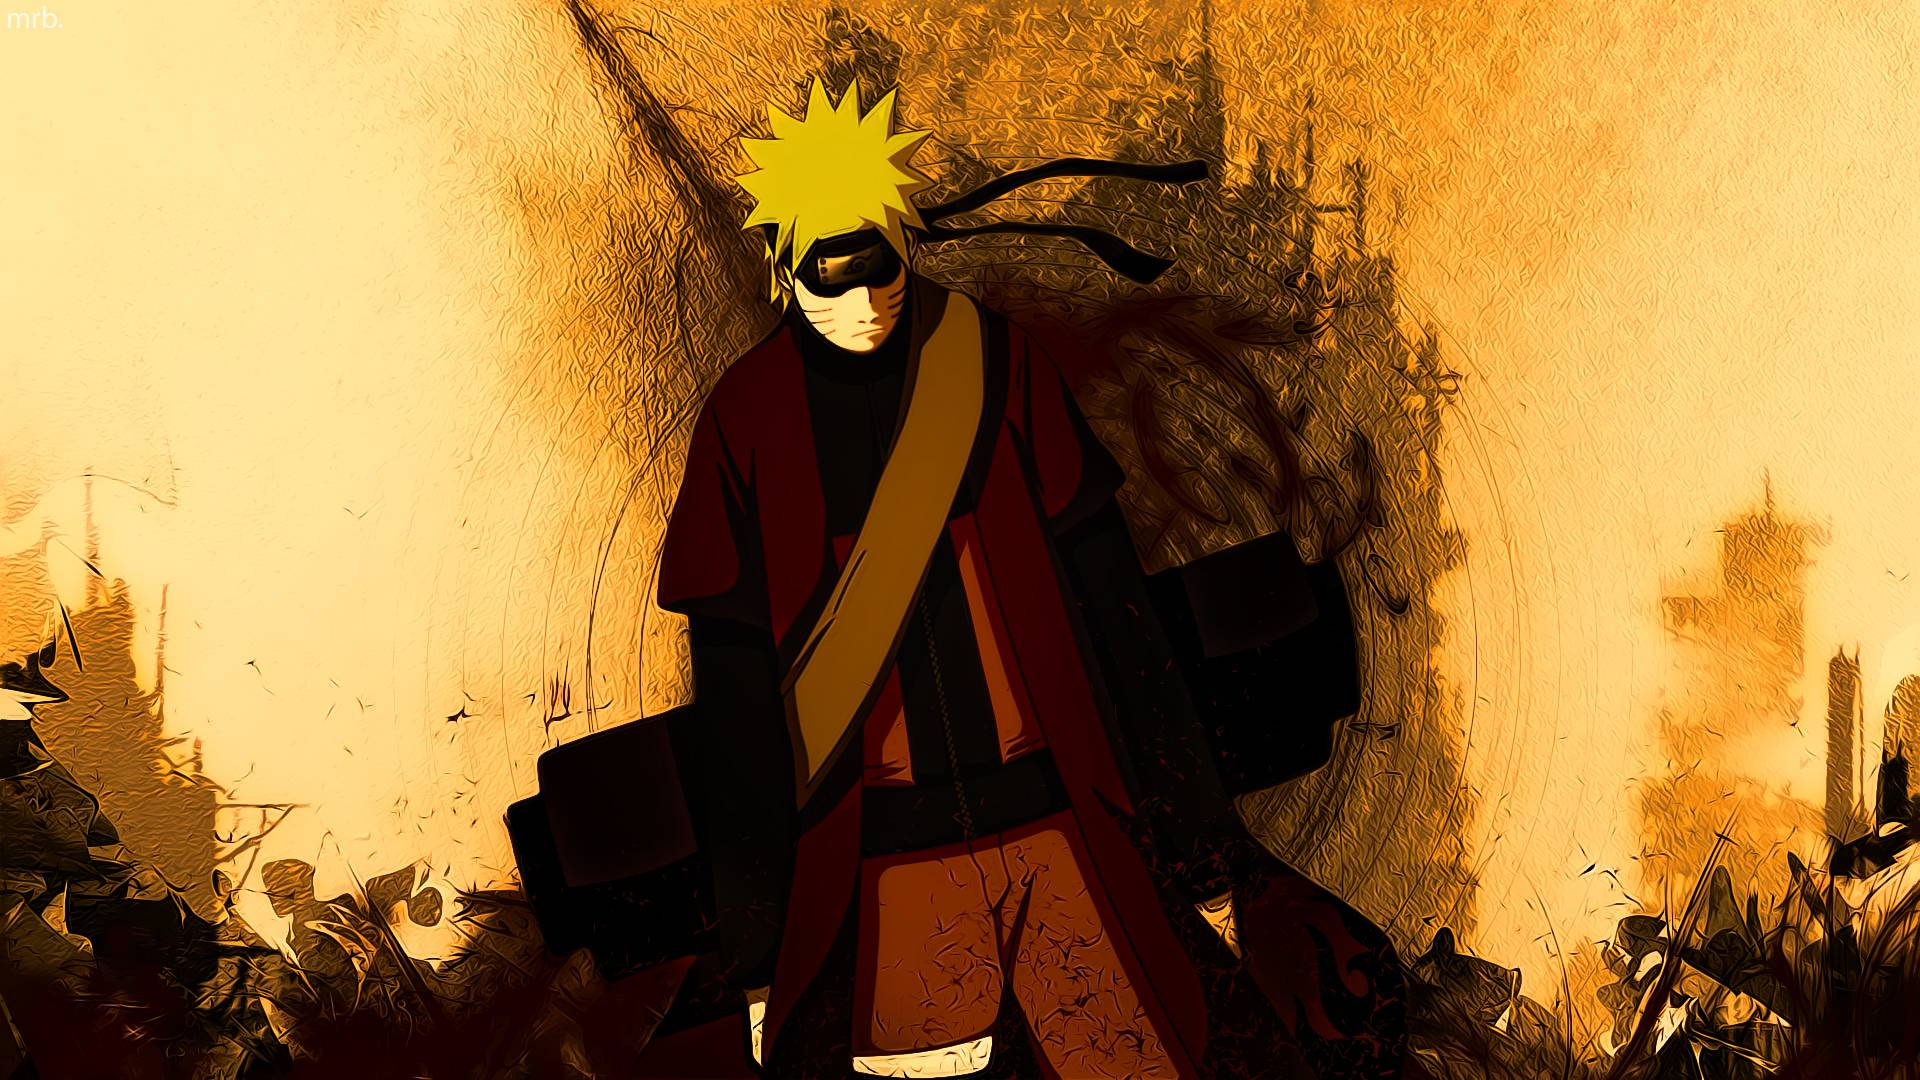 naruto wallpaper hd 19 backgrounds wallruru download